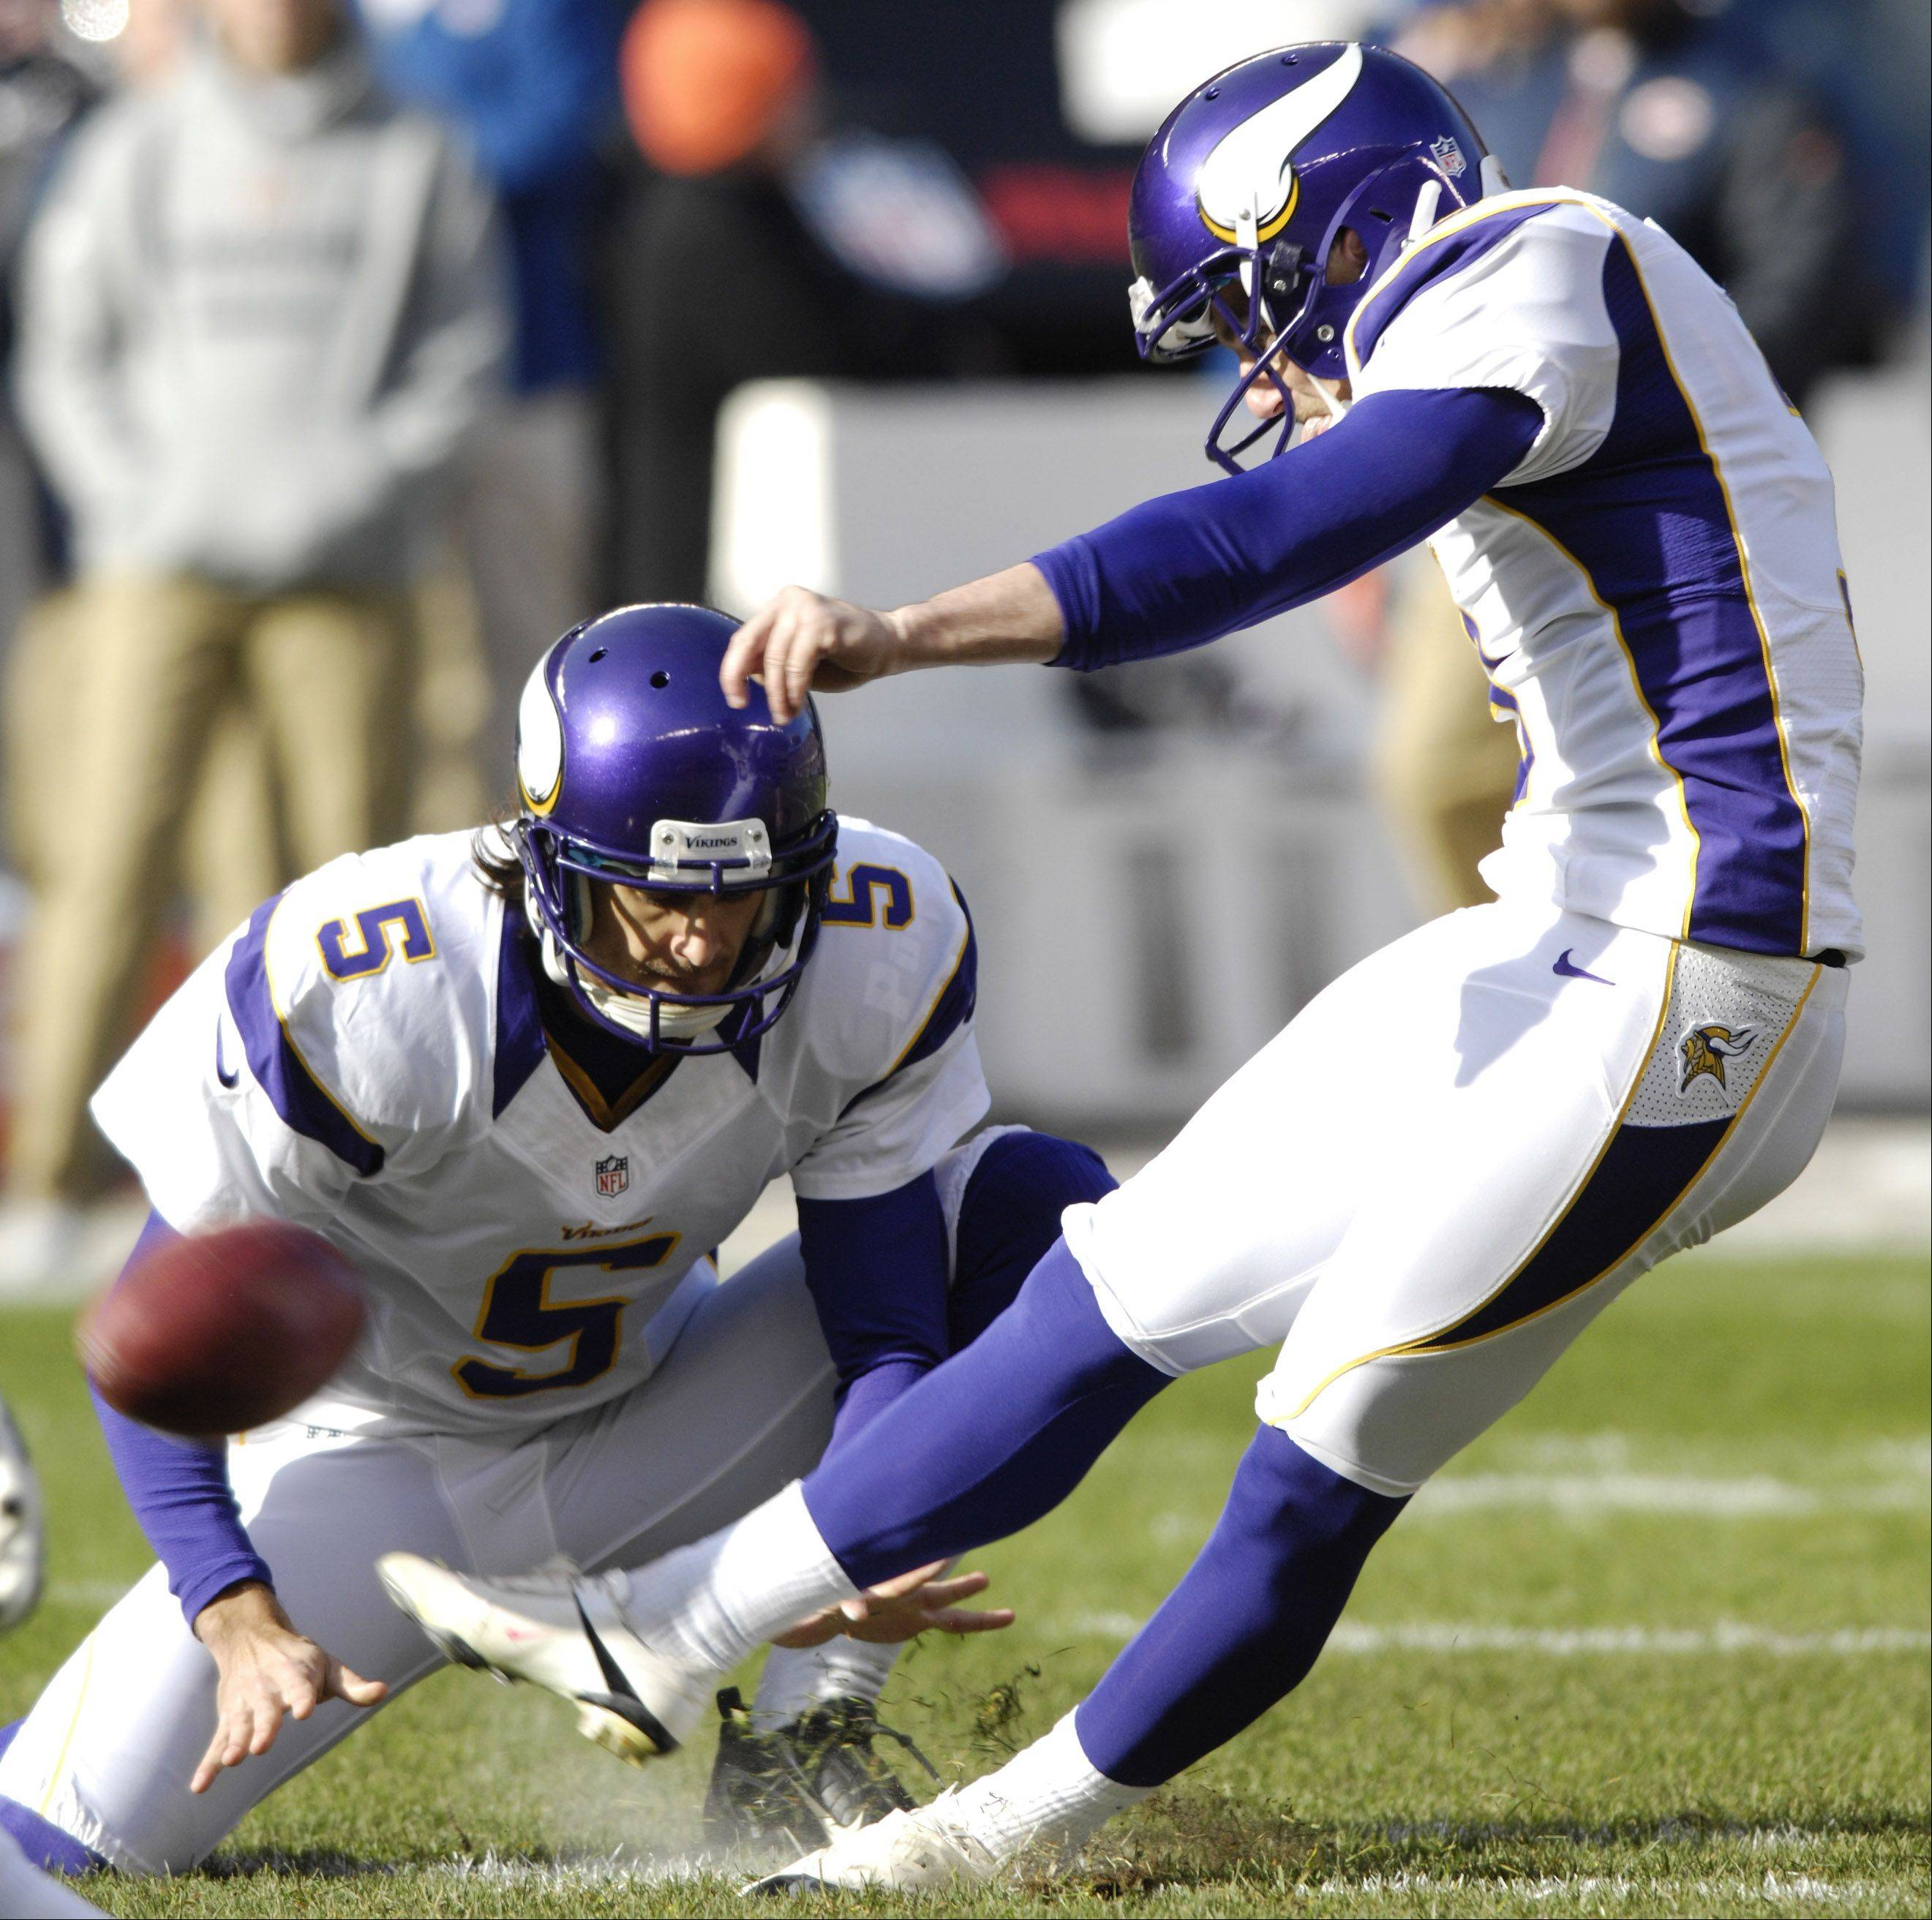 Minnesota Vikings kicker Blair Walsh kicks a field goal with Chris Kluwe holding during the first quarter against the Bears at Soldier Field Sunday.